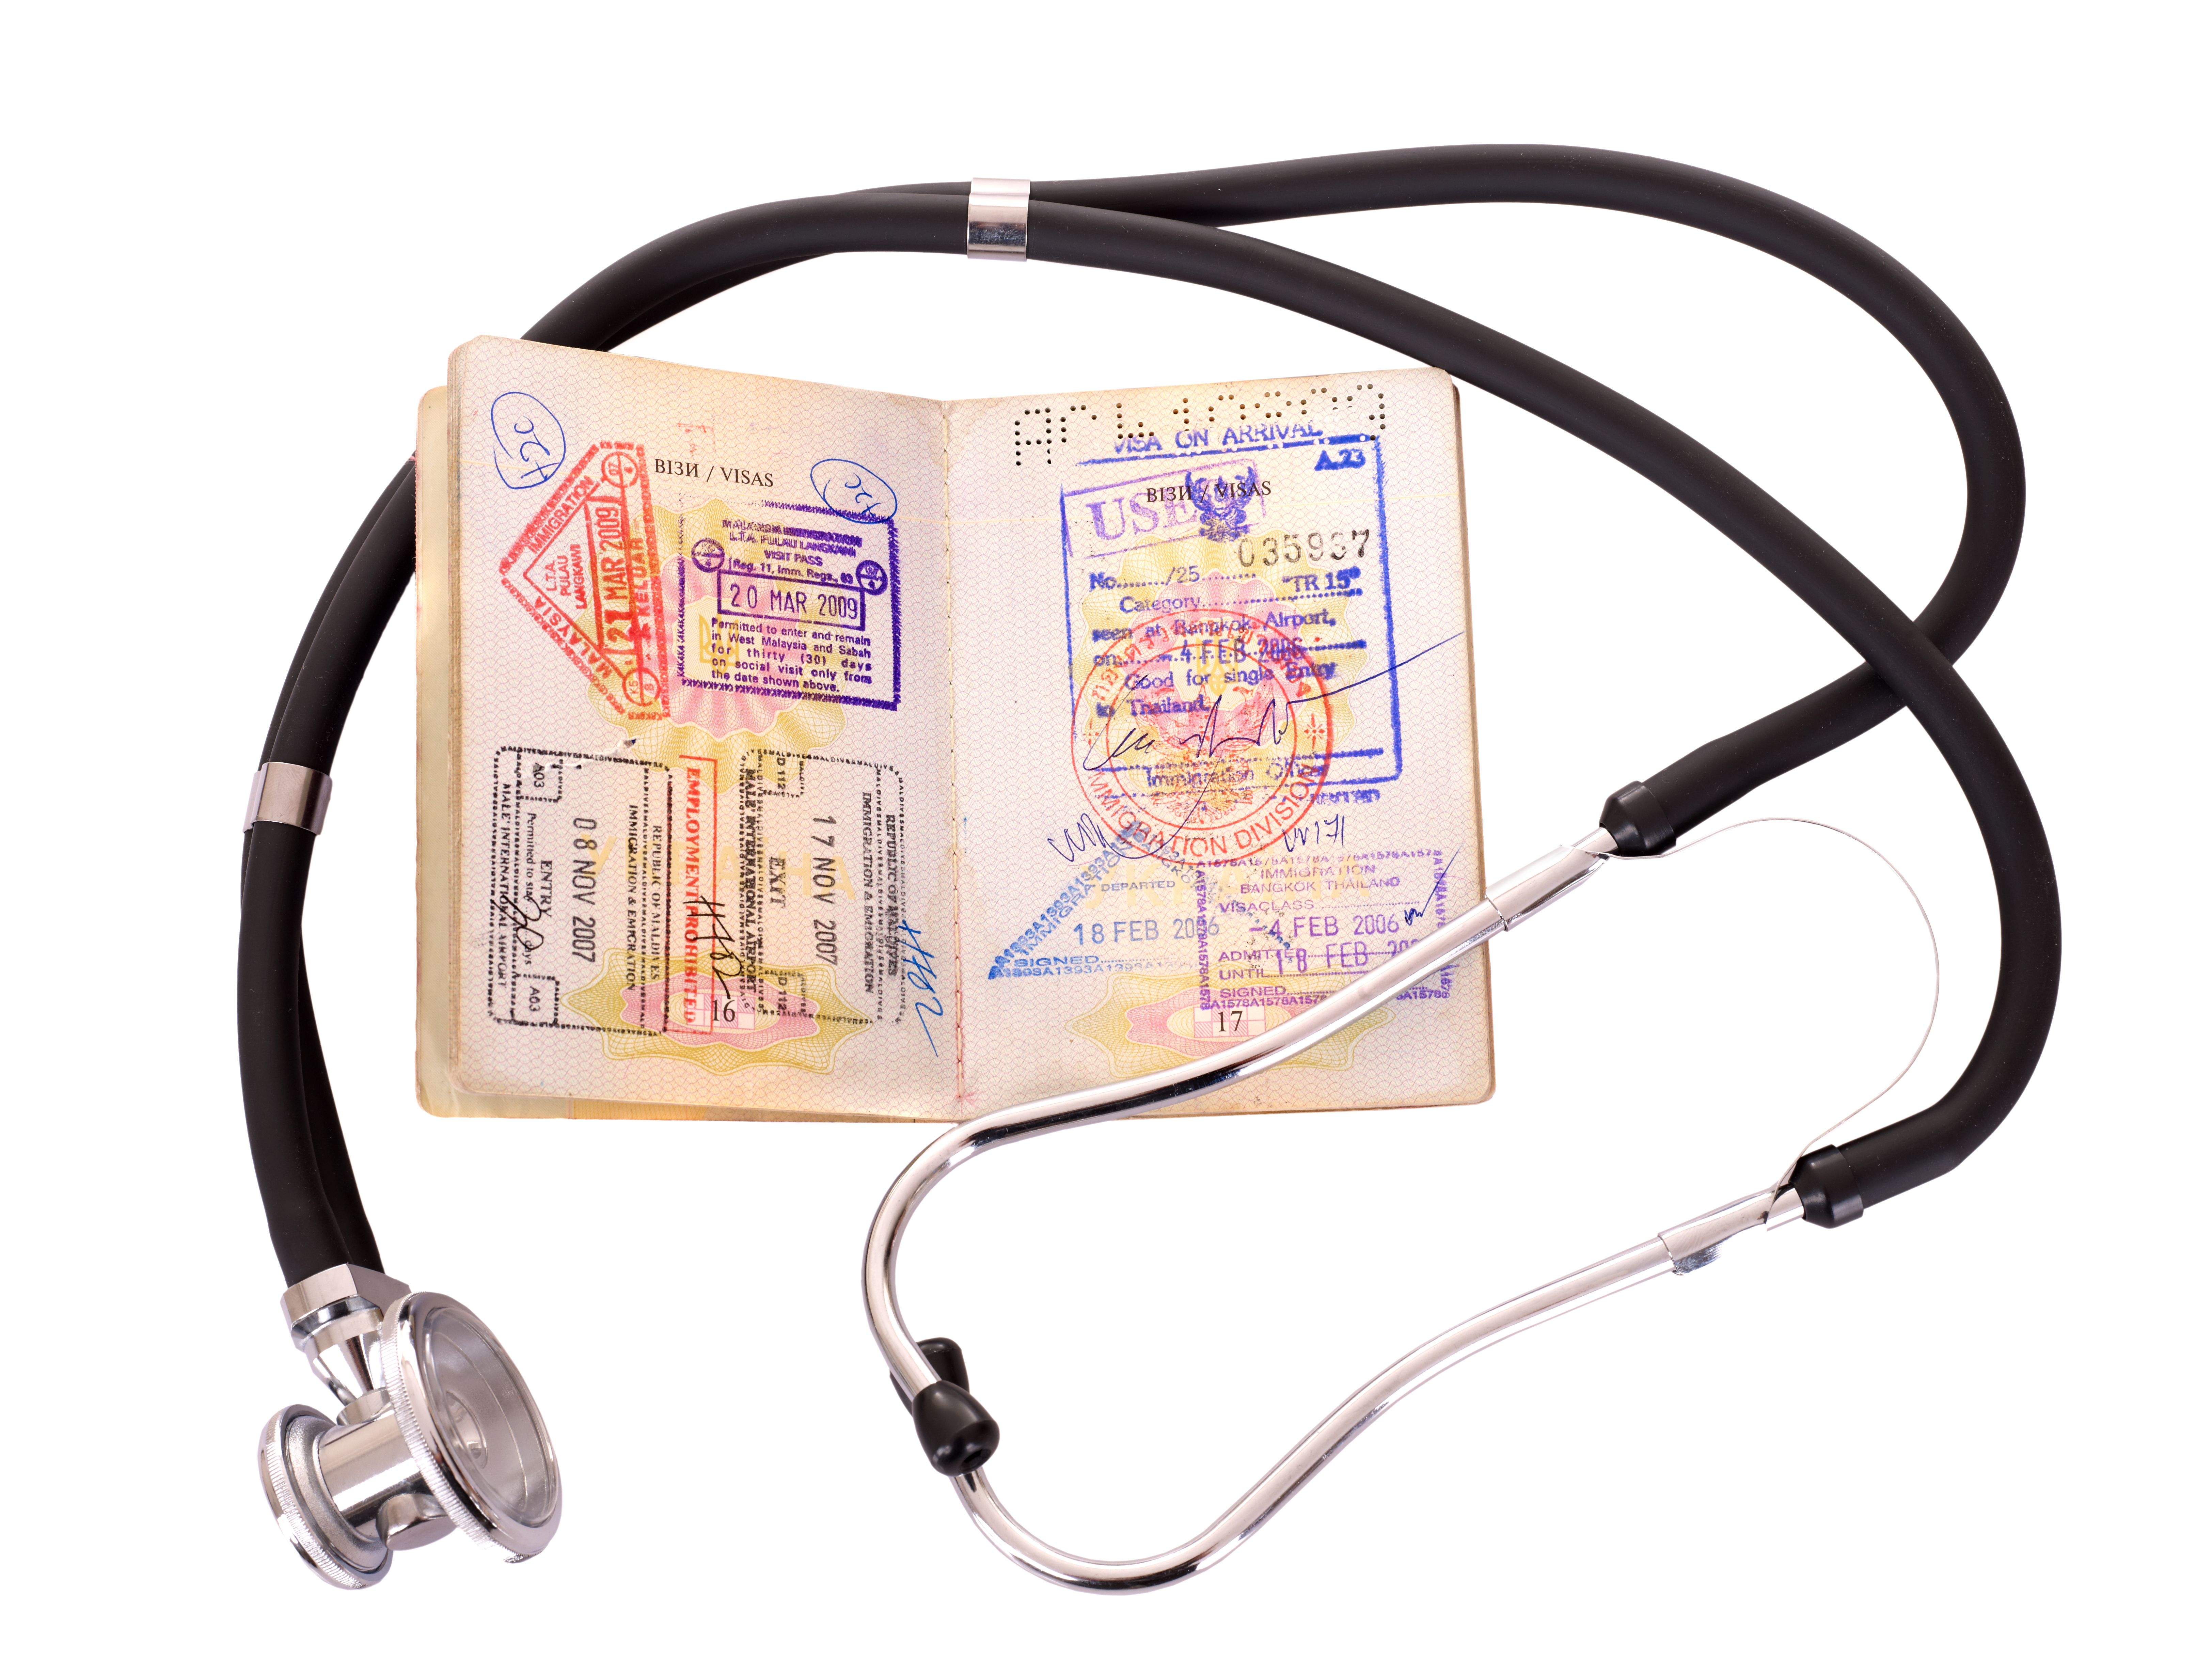 stethoscope and passport